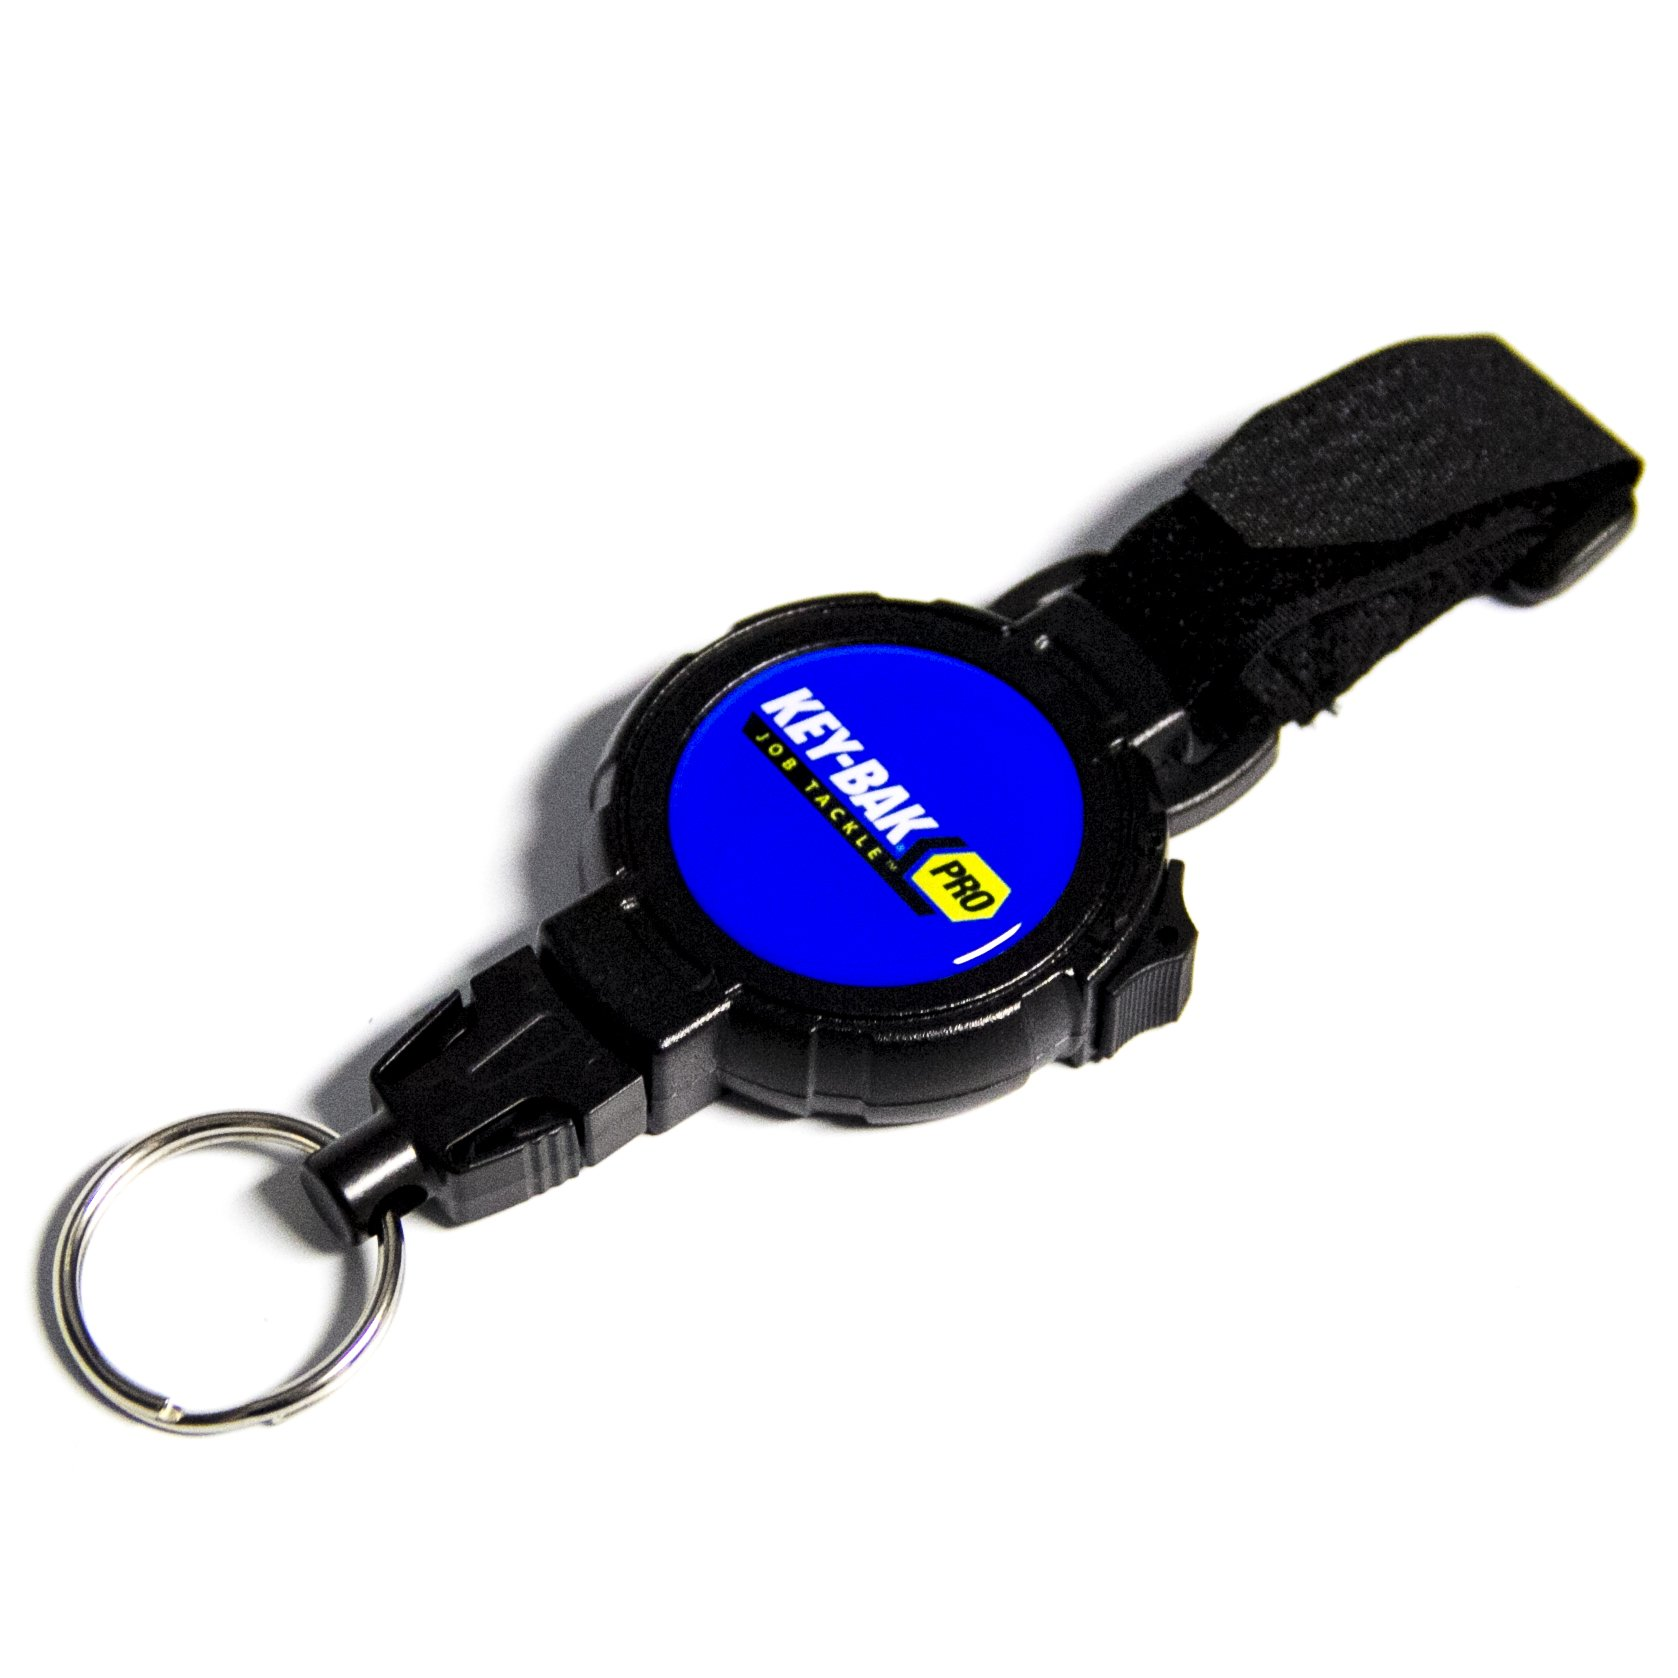 KEY-BAK Pro JobTackle Any Gear Split Ring Tether with a 36'' Kevlar Tether, 14 oz. Retraction, Tether Lock and Hook/Loop Strap Attachment